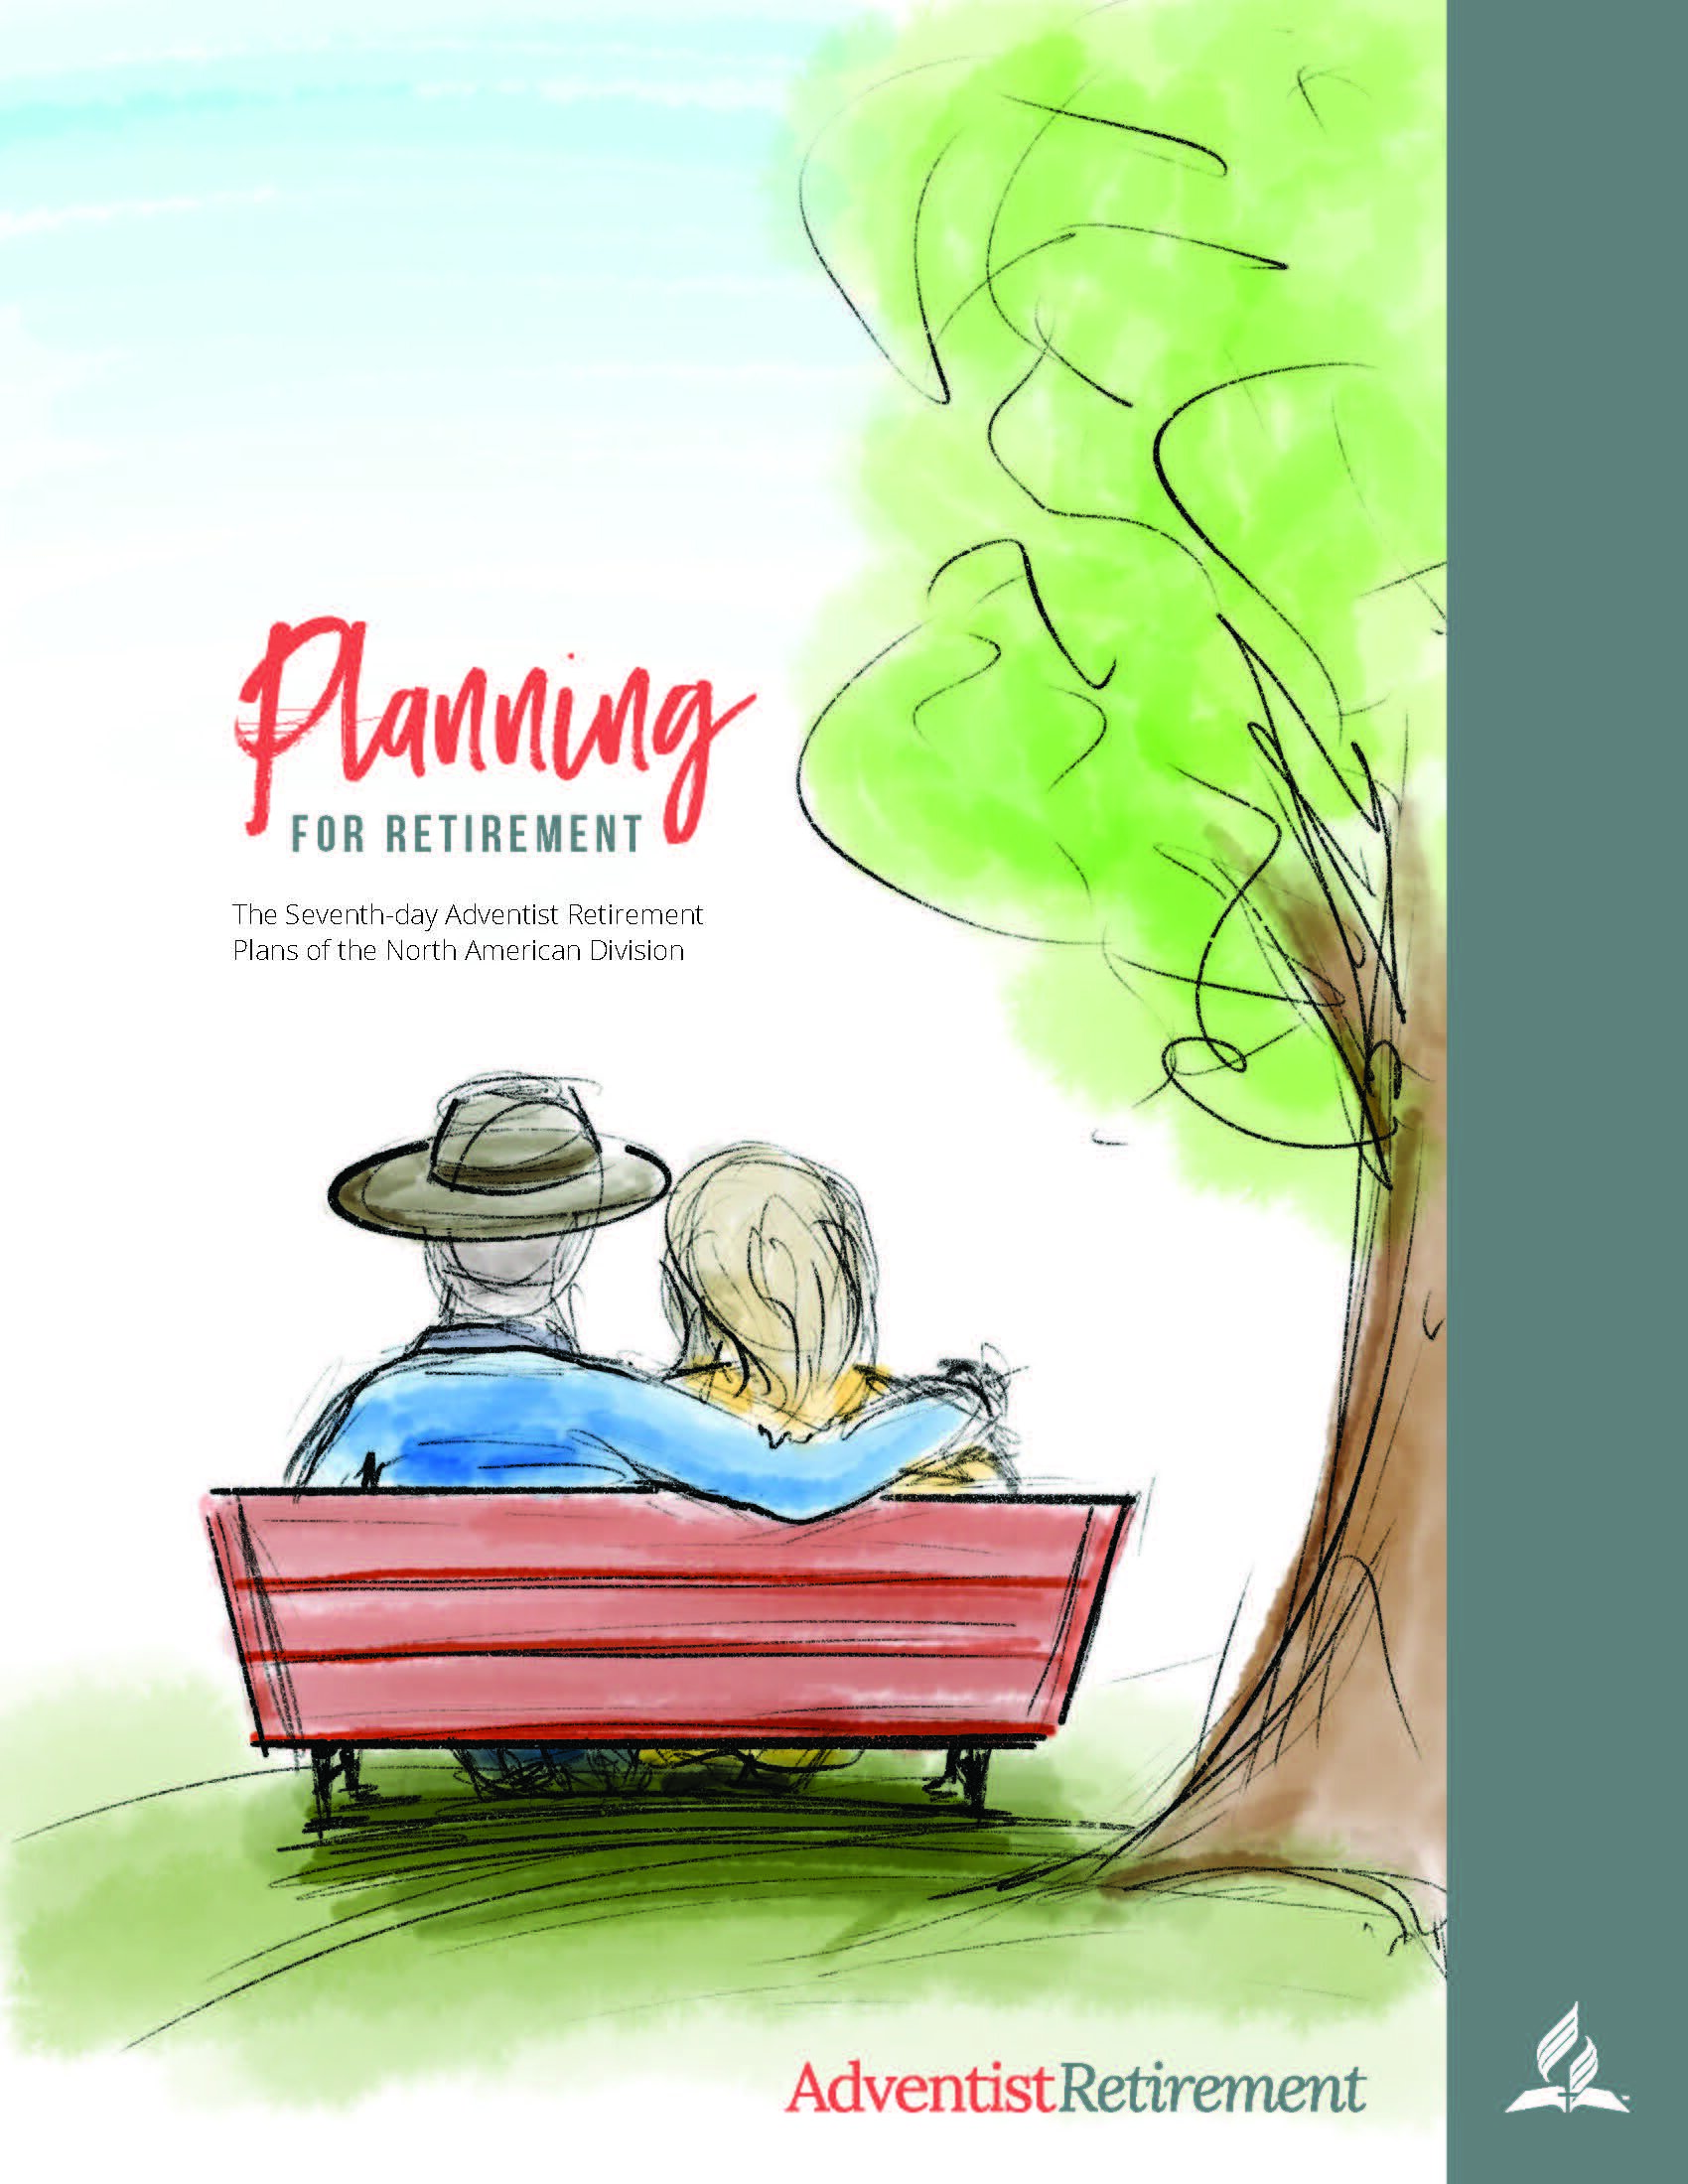 Design: Comprehensive – Best in Class     Planning for Retirement Summary    Clayton Kinney, Samantha Young, Raymond Jimenez, Lyn Wick, Tara Mead, Lisa Turpen, Lisa Sharpe, Beth Roberts  ADVENTIST RETIREMENT - NAD